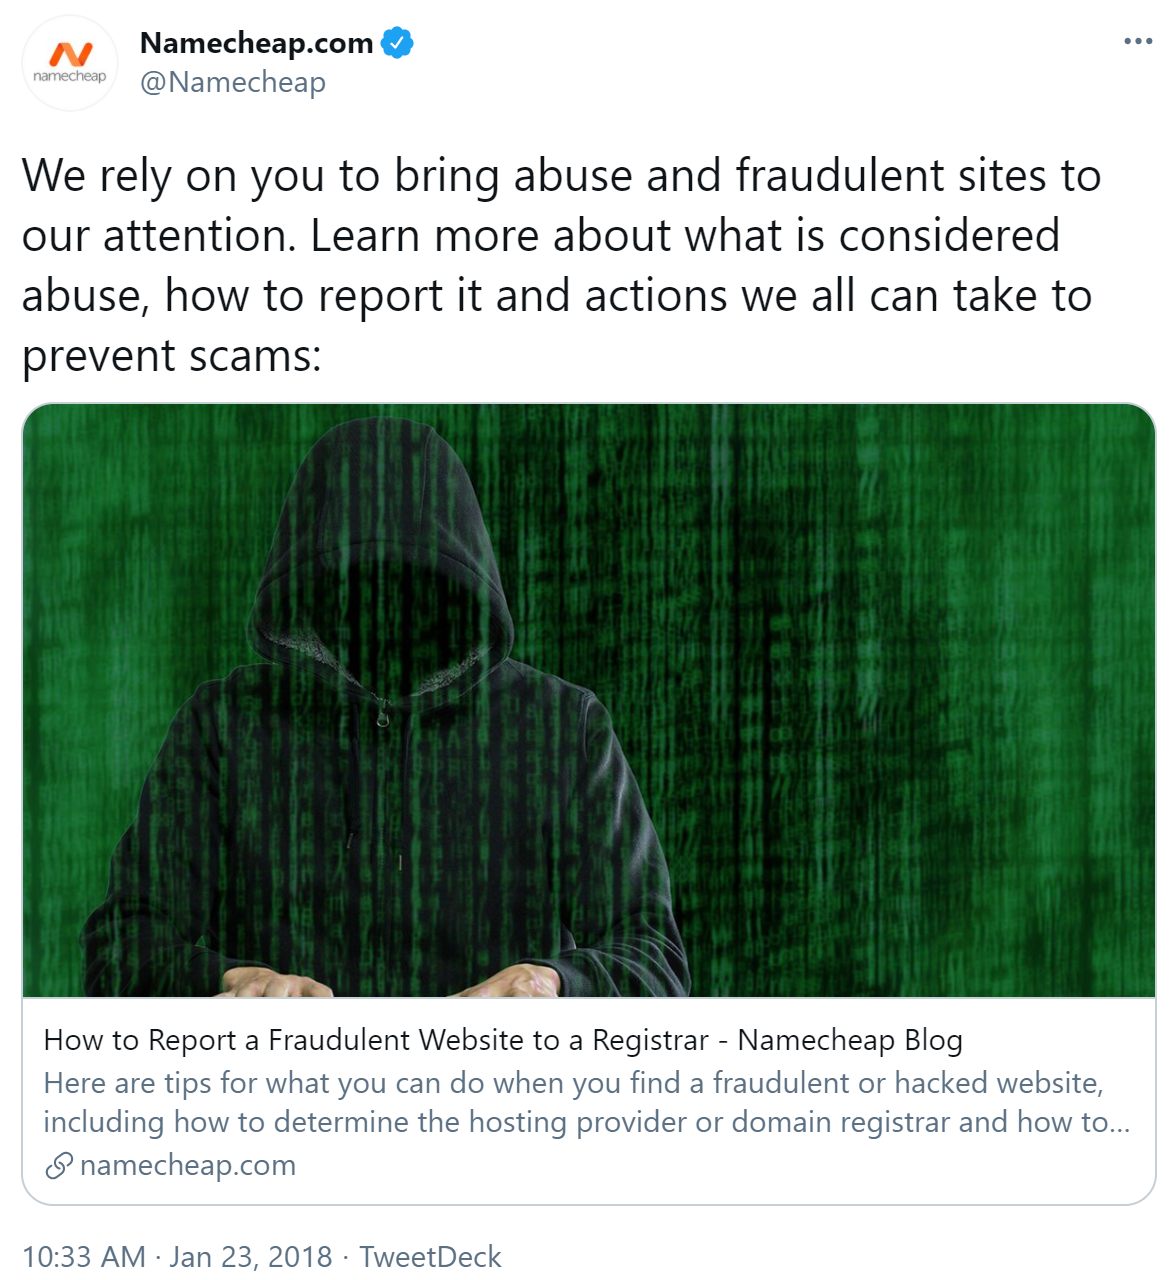 """Tweet from Namcheap reading """"We rely on you to bring abuse and fraudulent sites to our attention. Learn more about what is considered abuse, how to report it and actions we all can take to prevent scams:"""""""